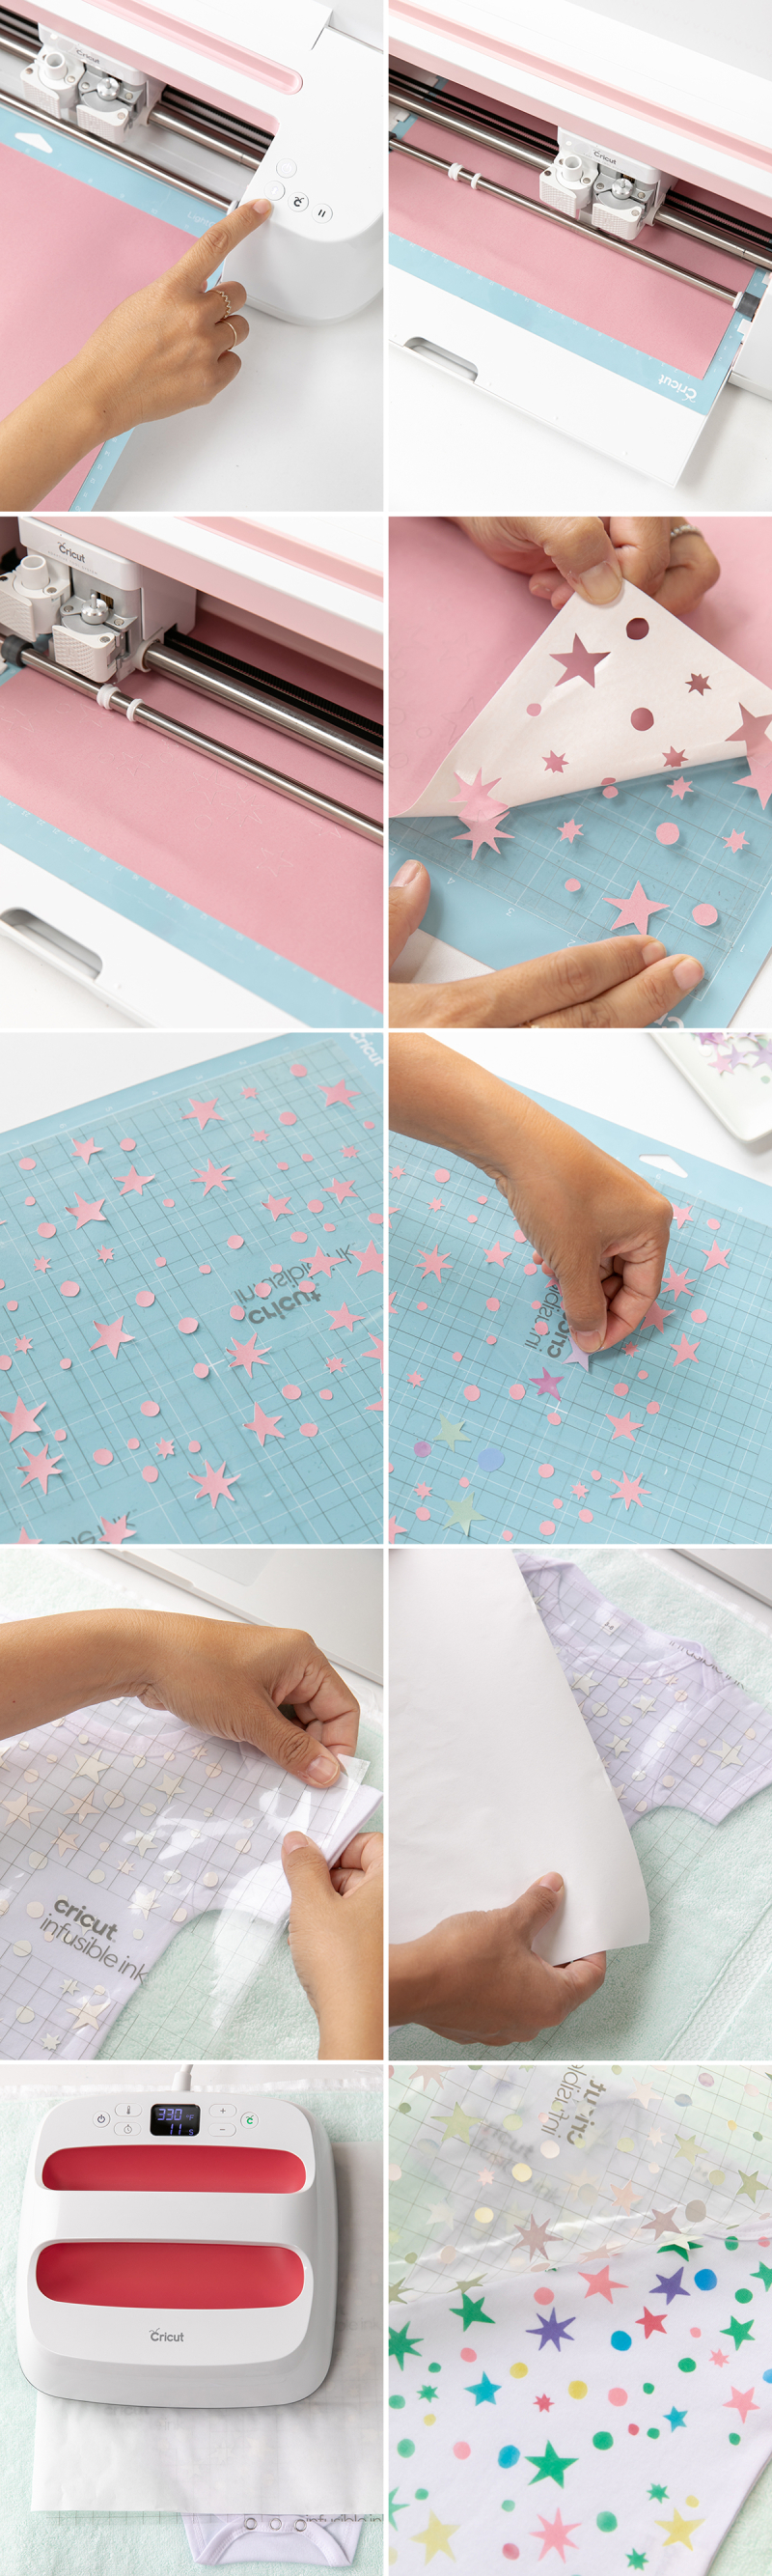 Match With Your Mini Me! / via Oh Joy! in partnership with Cricut